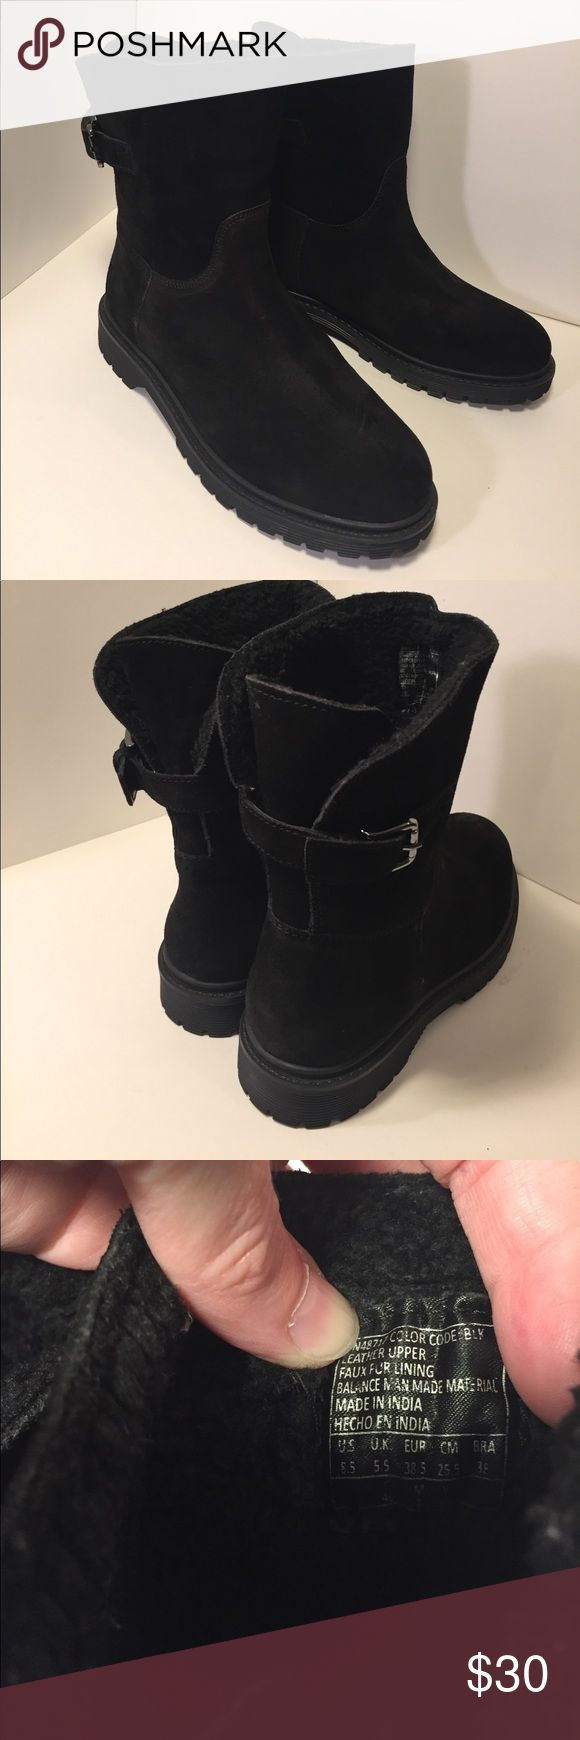 Skecher Black cozy leather boots faux fur lining This is a pair of black classic leather boots with faux fur lining, buckle accent, durable tread. See pictures for details. Good condition minor wear, souls are in great condition, see pictures. Be sure and check out other items in closet and bundle to receive discounts. Skechers Shoes Ankle Boots & Booties